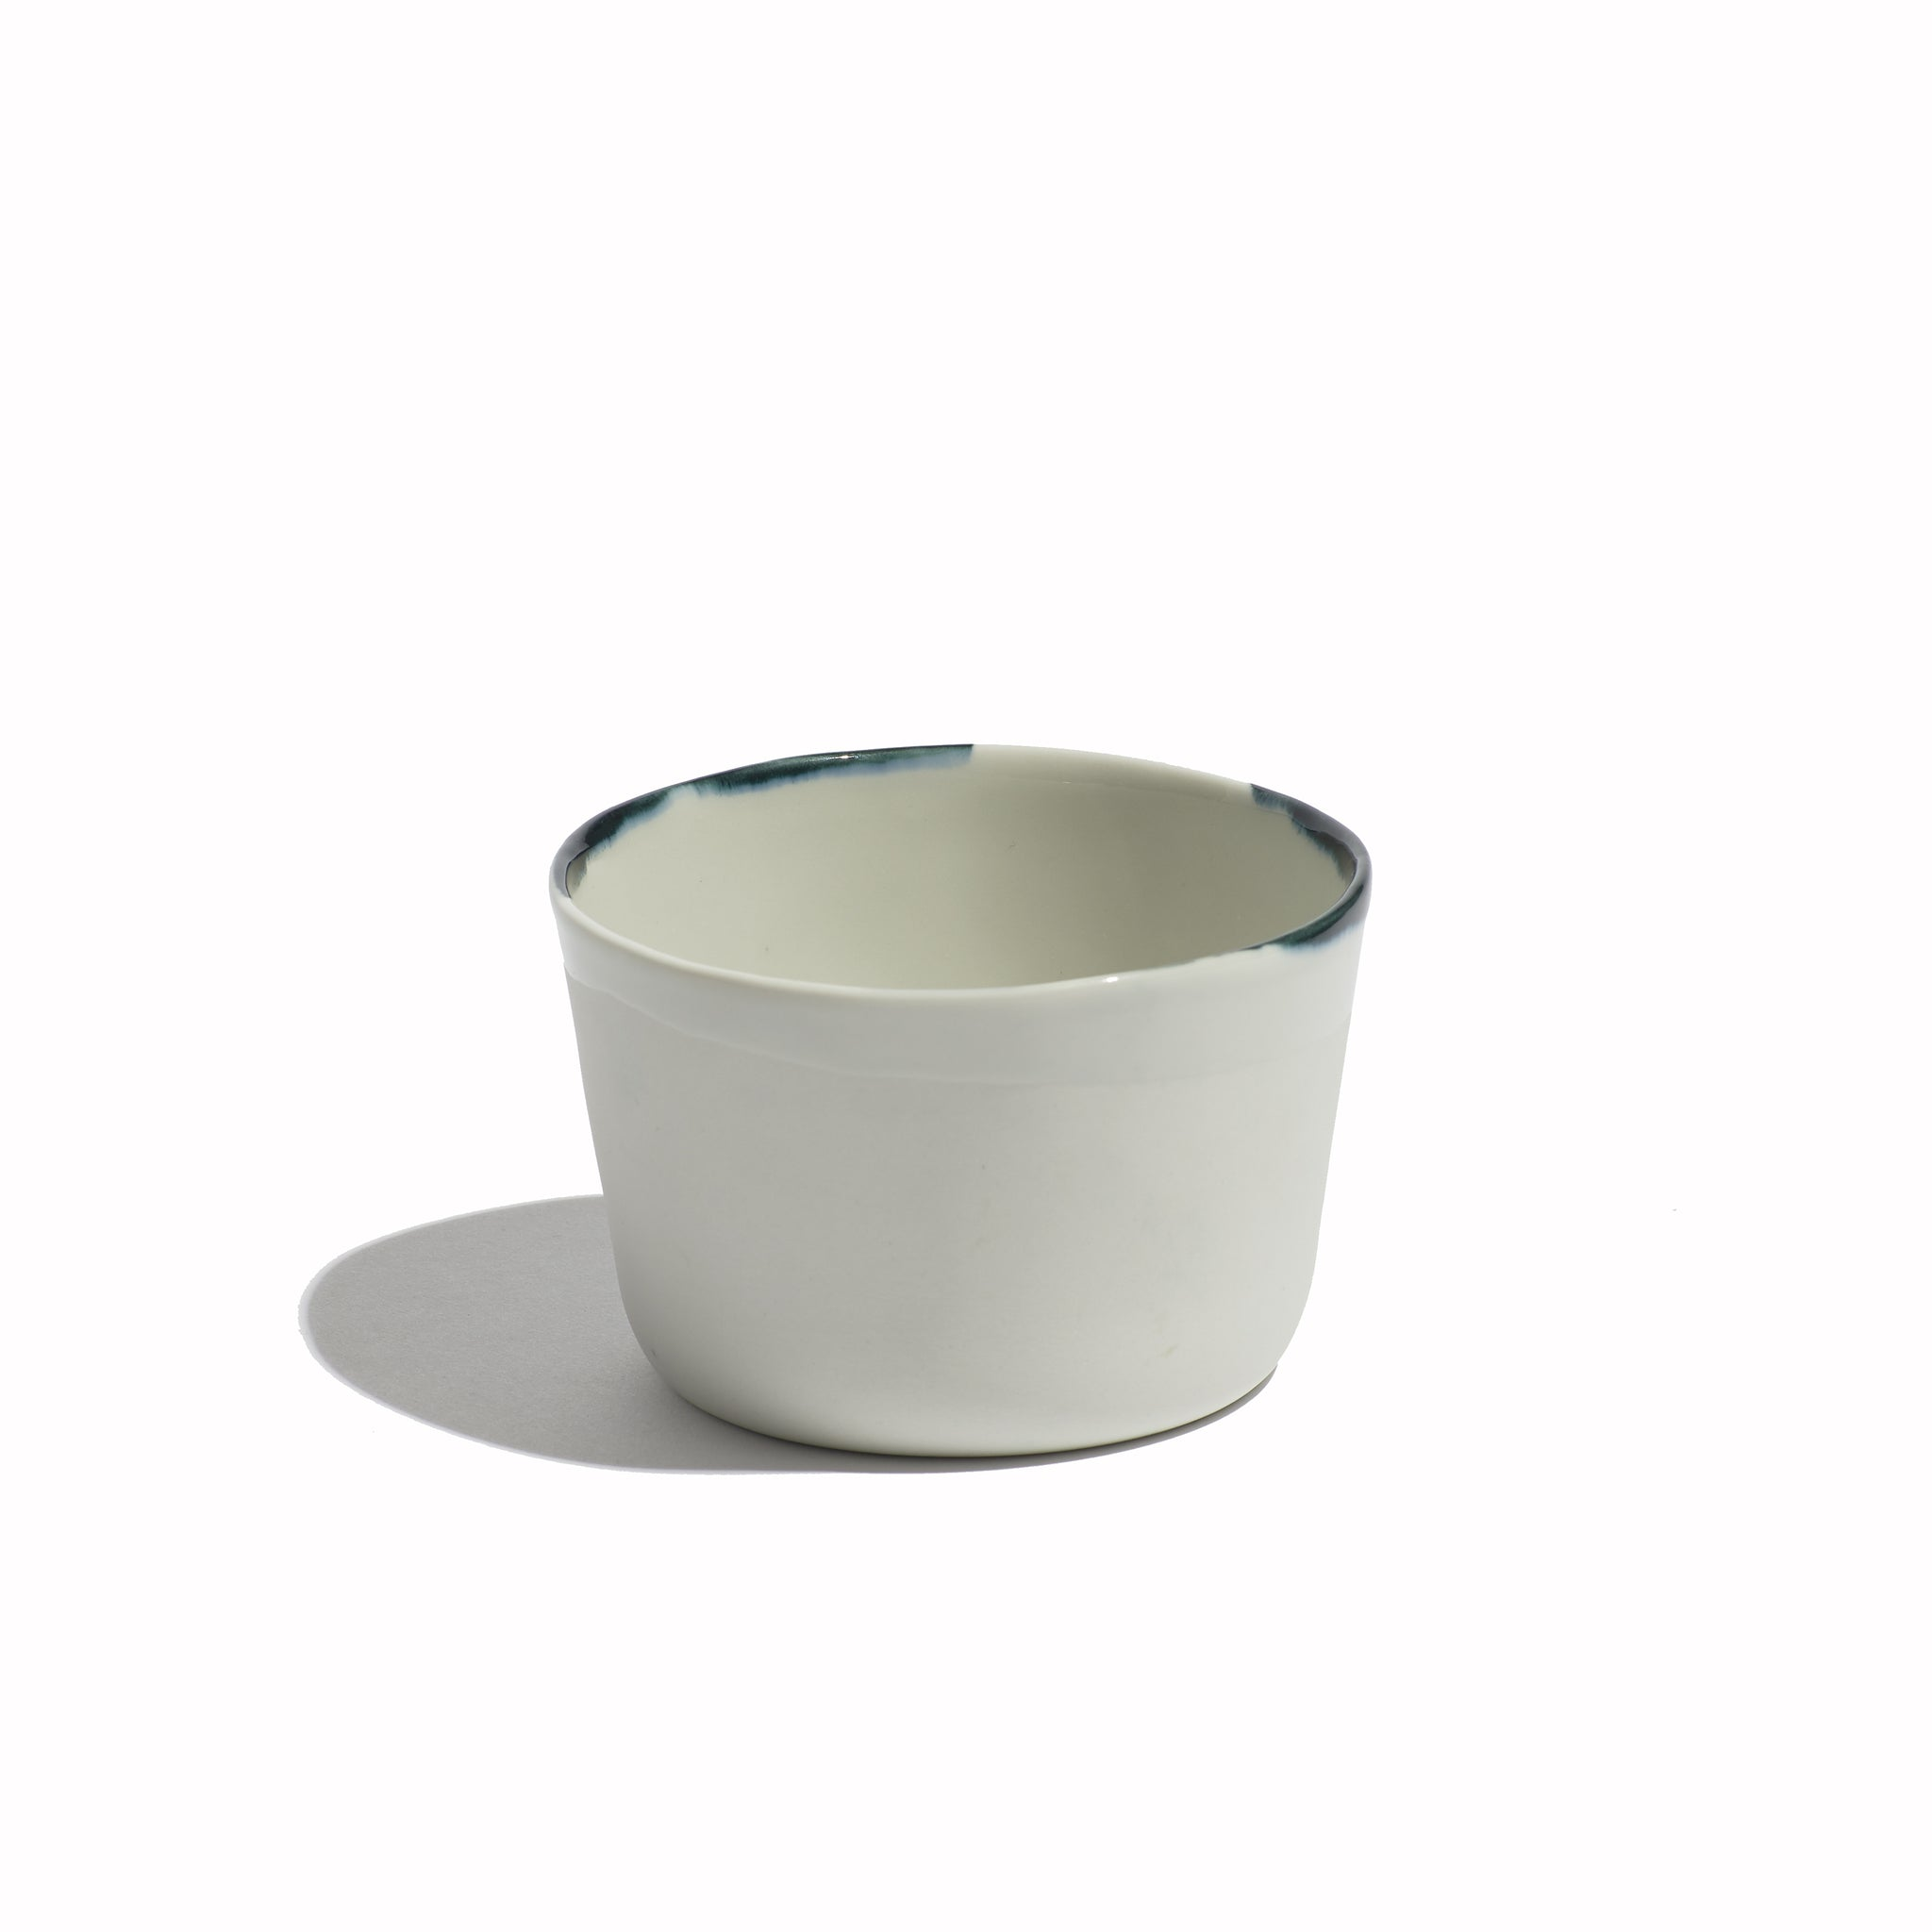 bowl - cup